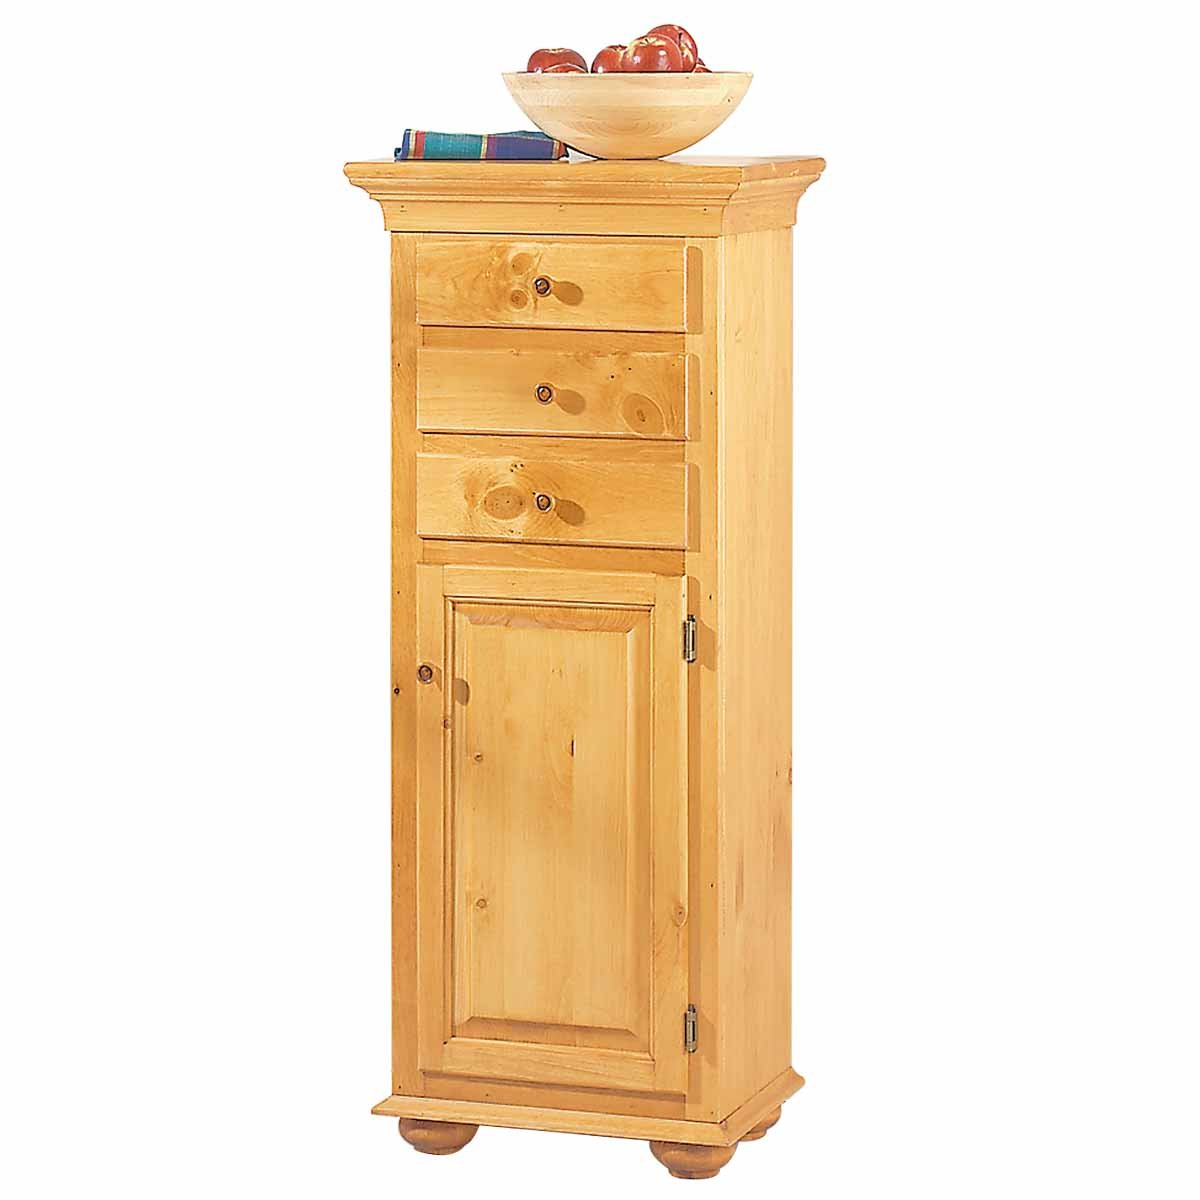 house carlisle oak jelly handcrafted cupboard product shaker this